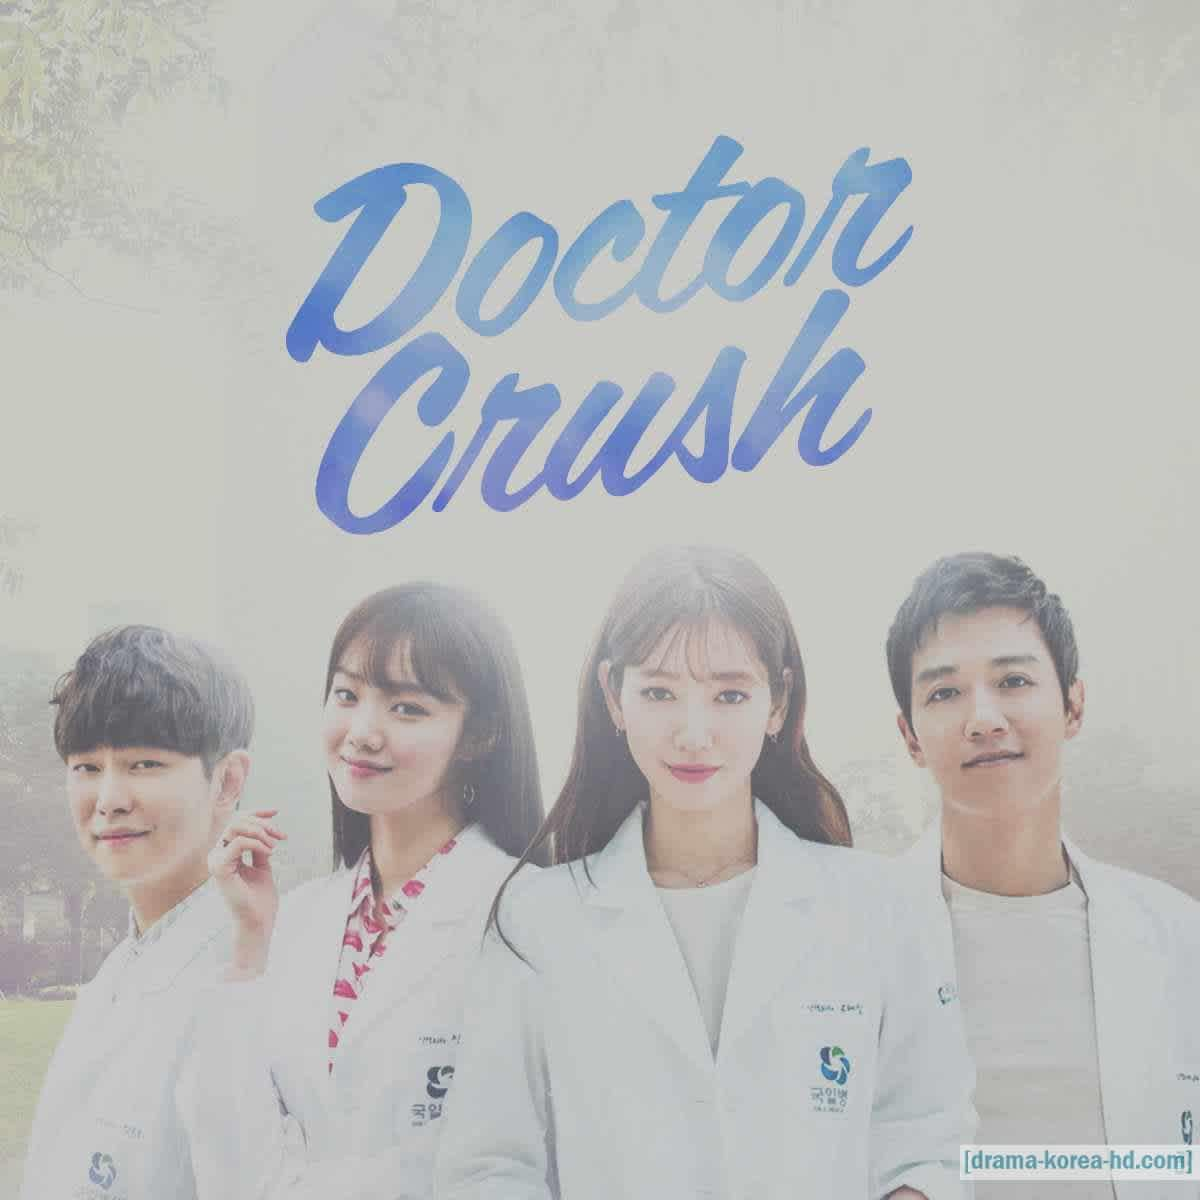 Doctor Crush - All Episode drama korea